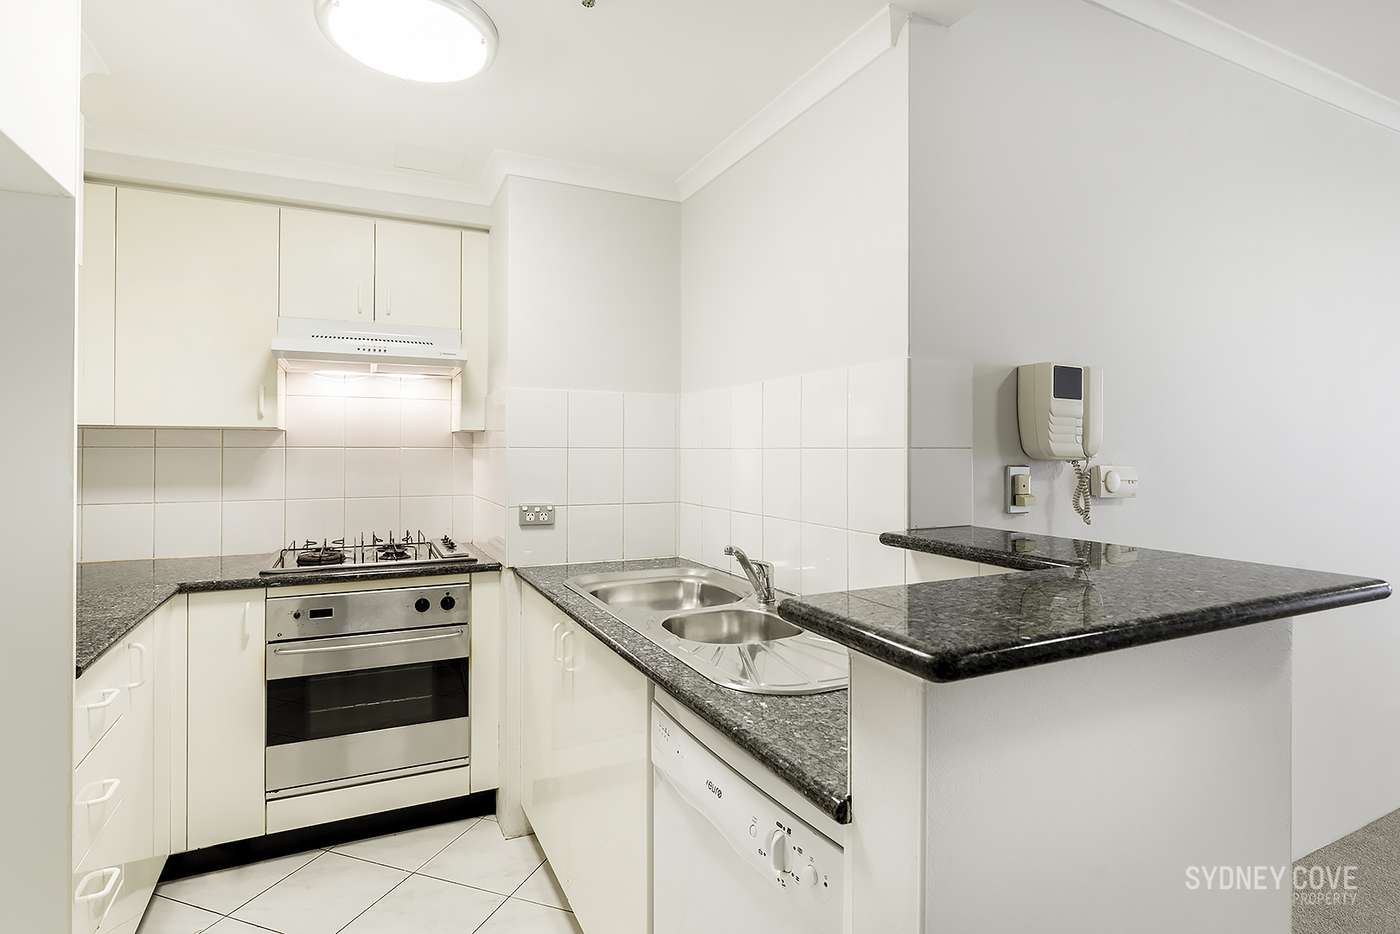 Main view of Homely apartment listing, 1 Pelican St, Darlinghurst NSW 2010